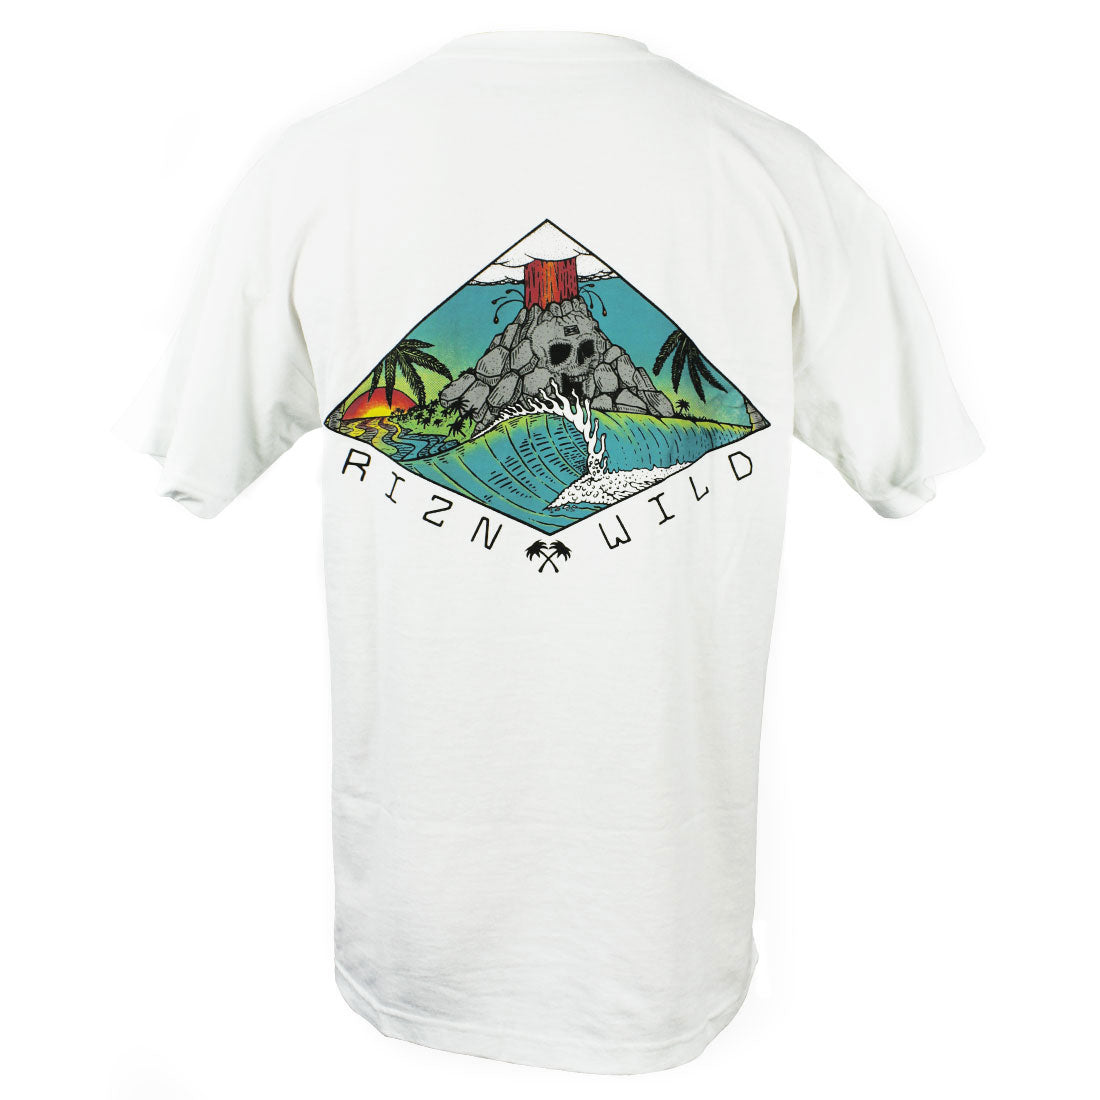 RIZNWILD | Back of men's t-shirt exploding volcano design | Skullcano